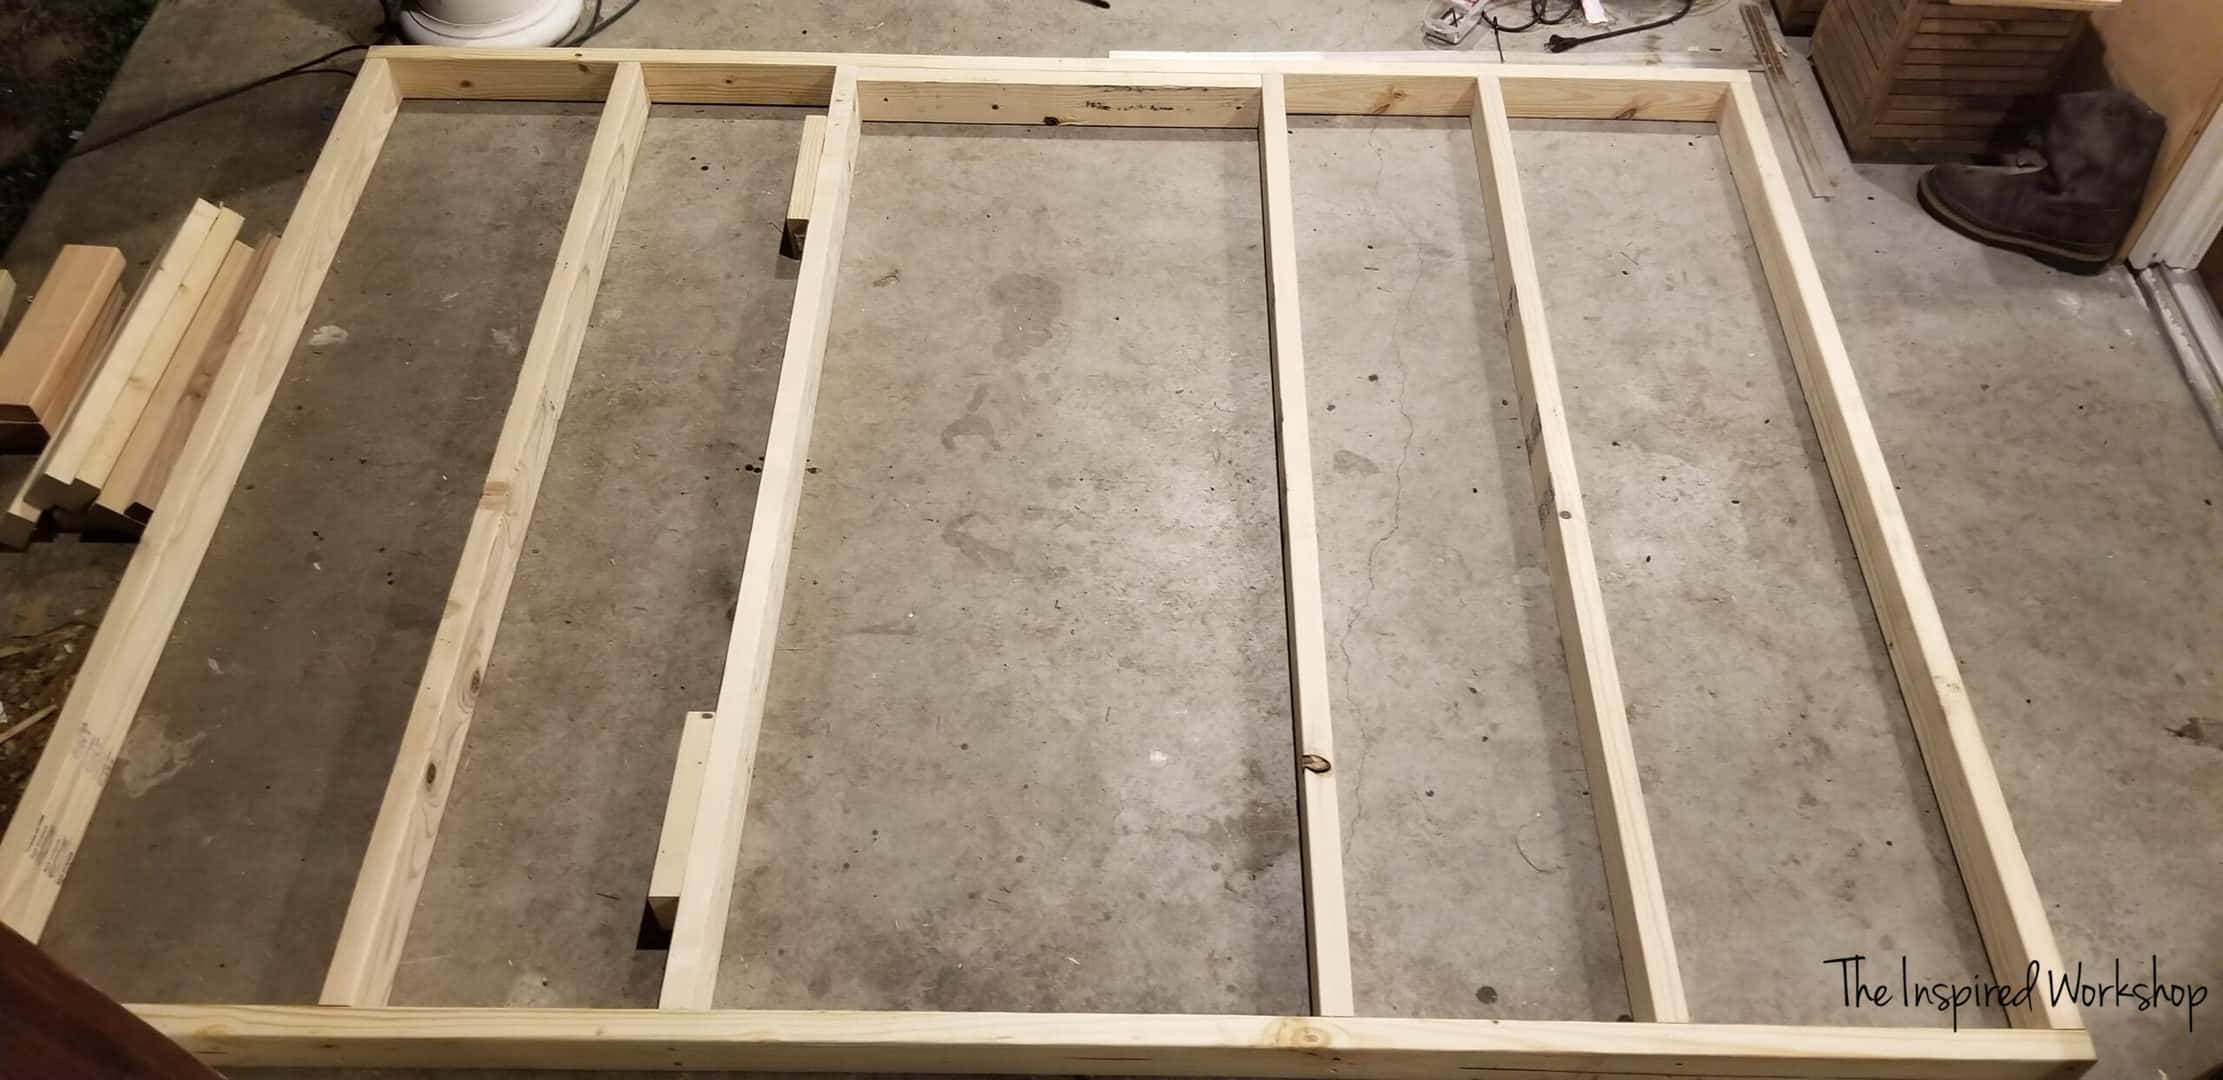 Framing out the chicken coop walls